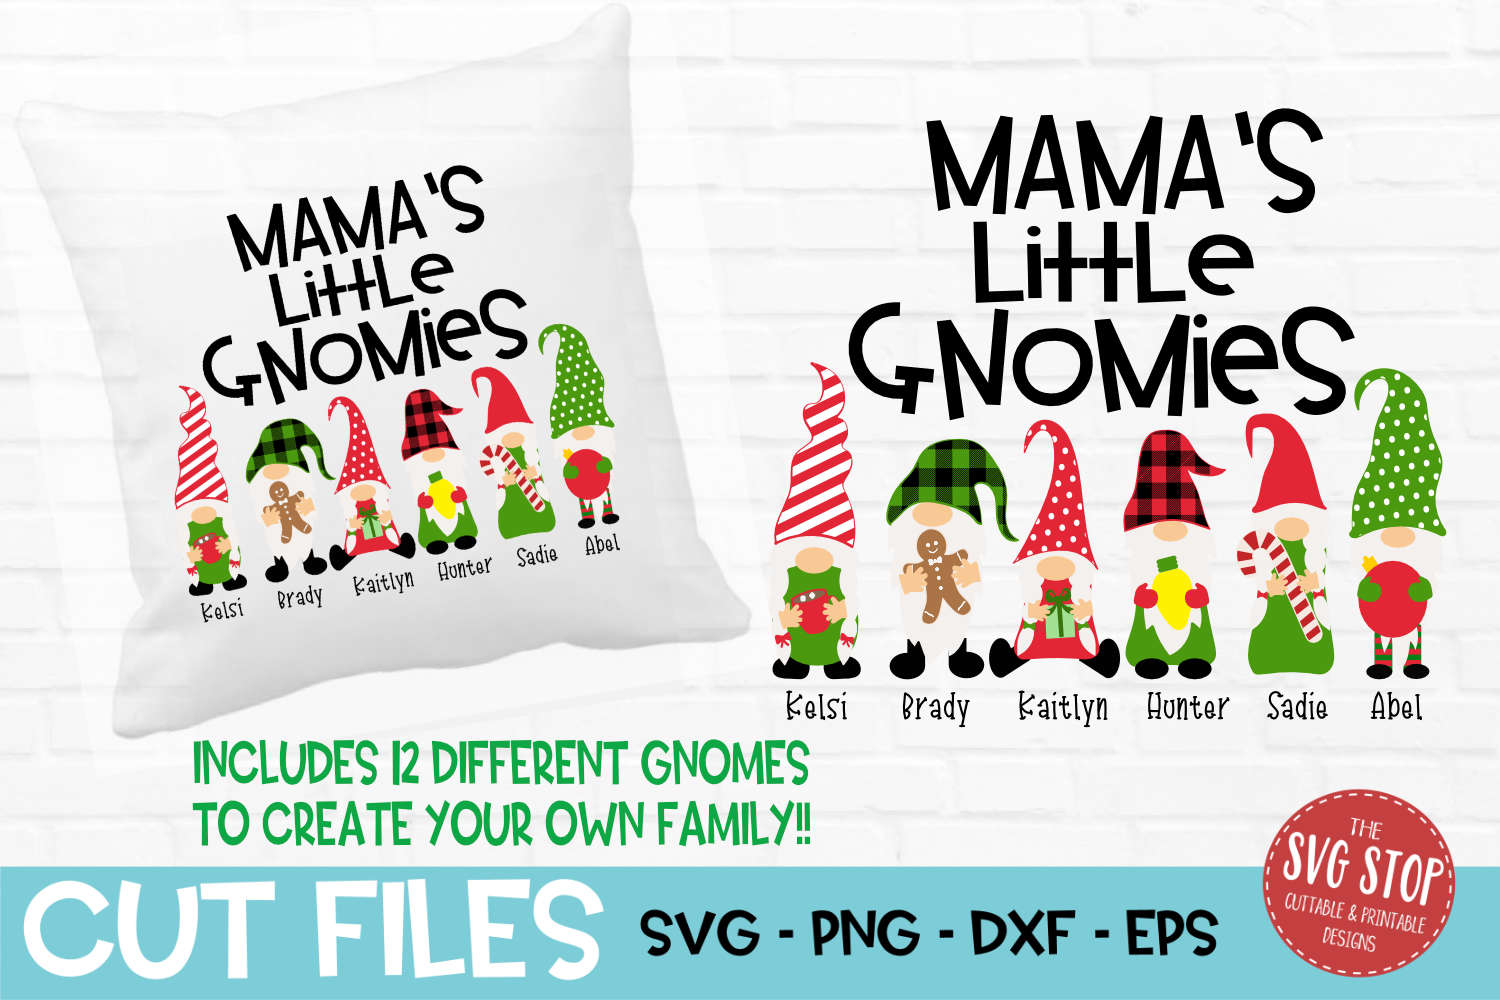 Mama's Little Gnomies Christmas SVG, PNG, DXF, EPS example image 1